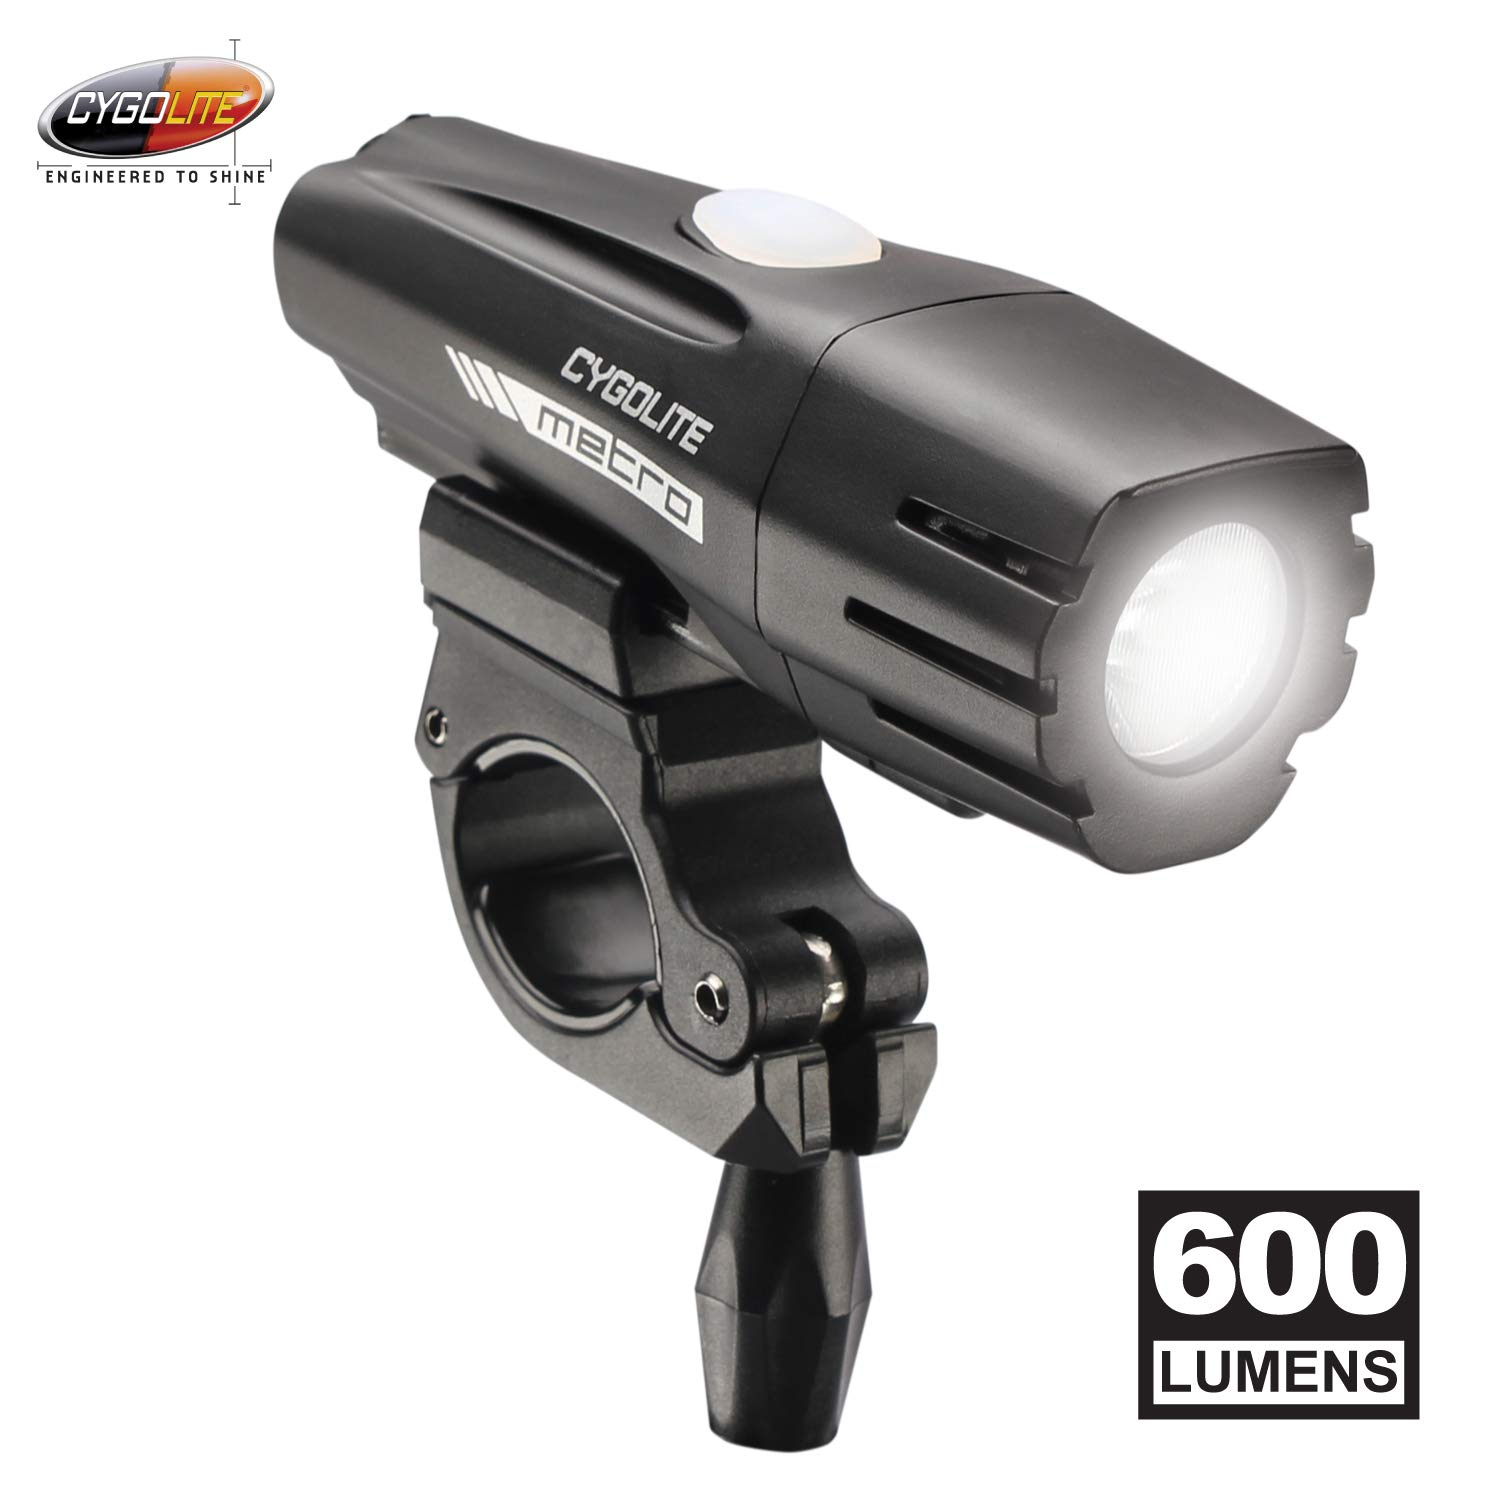 Cygolite Metro 600 Lumen Bike Light 4 Night Modes Daytime Flash Mode Compact Durable IP67 Waterproof Secured Hard Mount USB Rechargeable Headlight for Road, Mountain, Commuter Bicycles